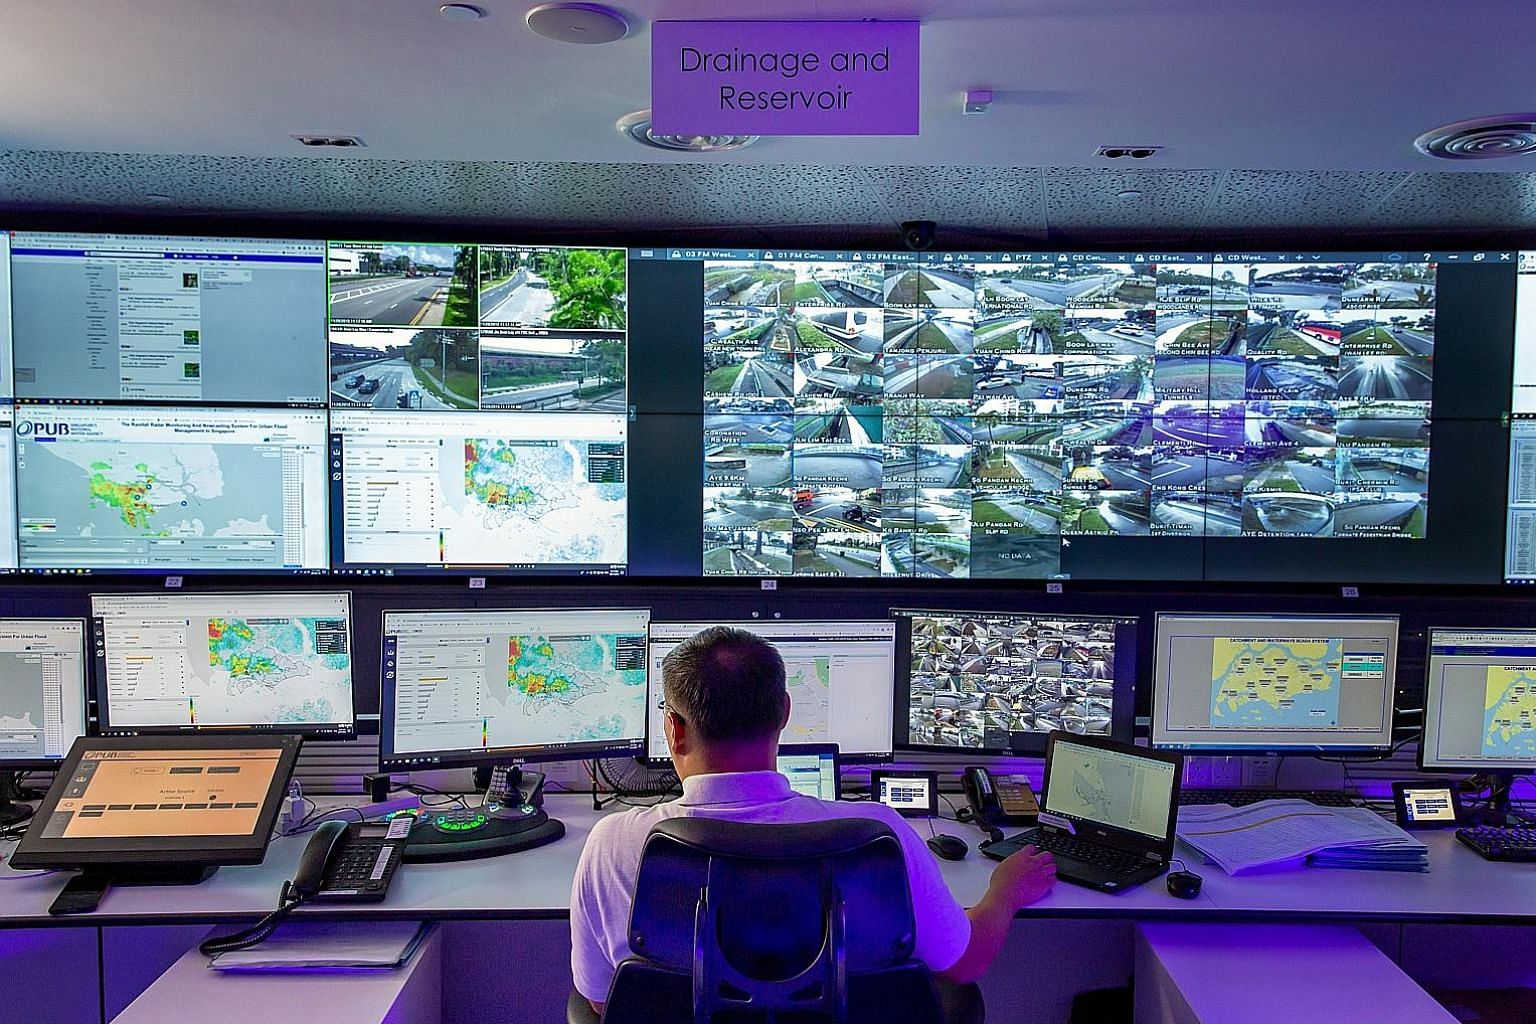 Left: The PUB's Joint Operations Centre in Scotts Road, where duty officers monitor the rainfall prediction system, as well as a network of CCTVs and water level sensors located in drains and canals. Below: The X-band radar at Changi Water Reclamatio